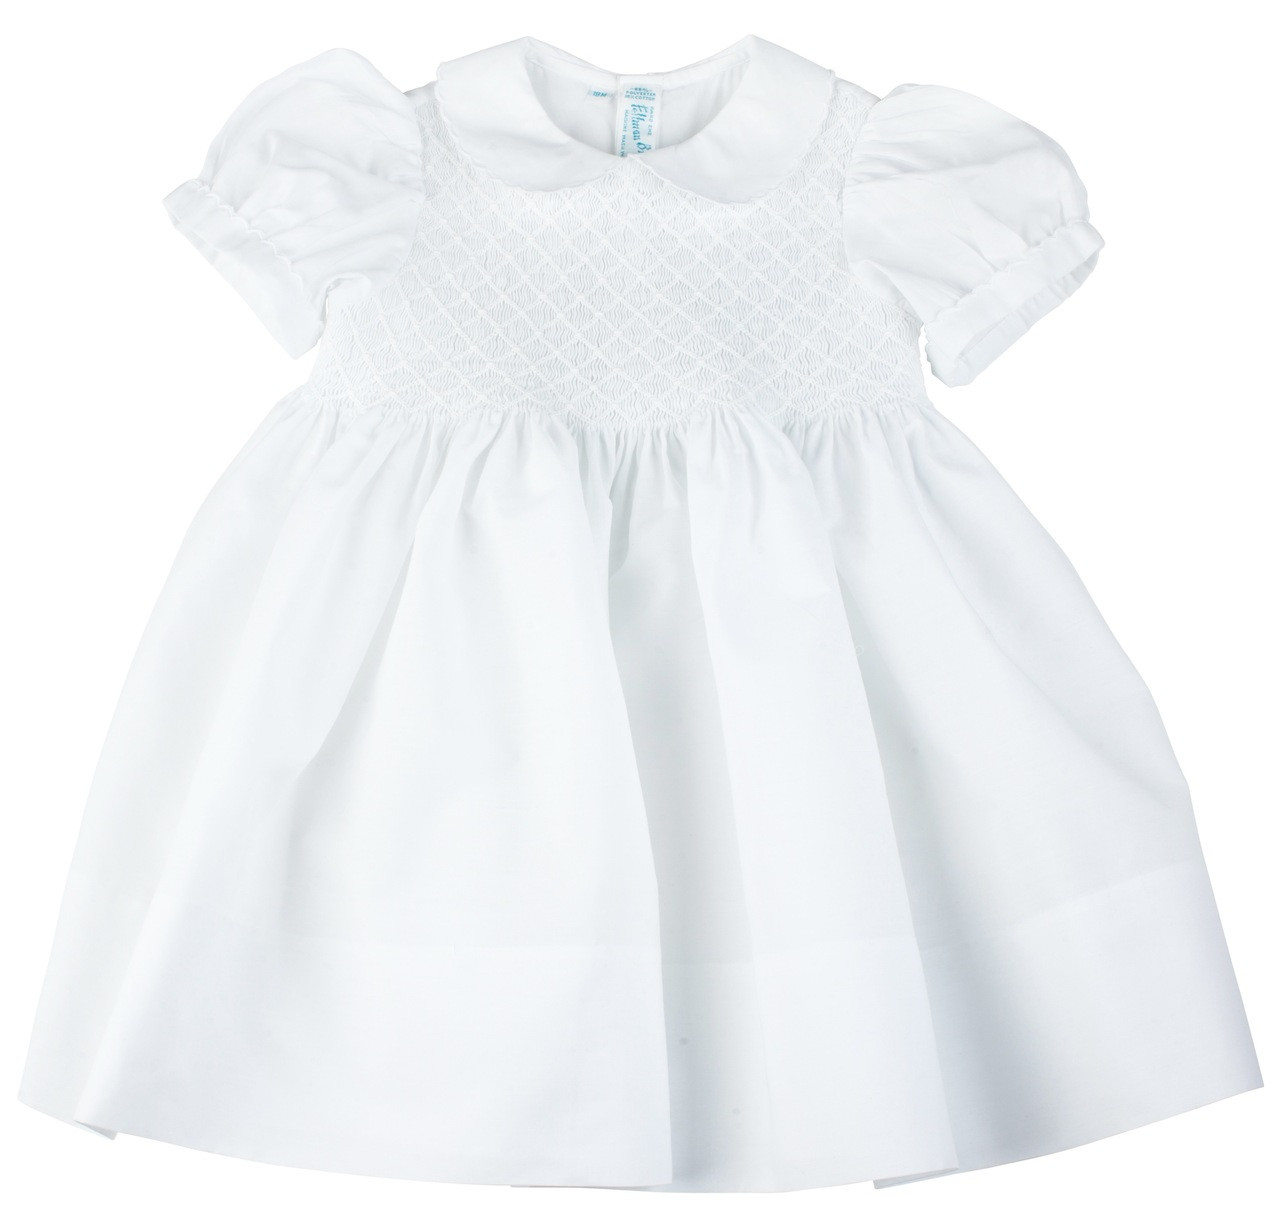 White Smocked Dress JeP5jbtn